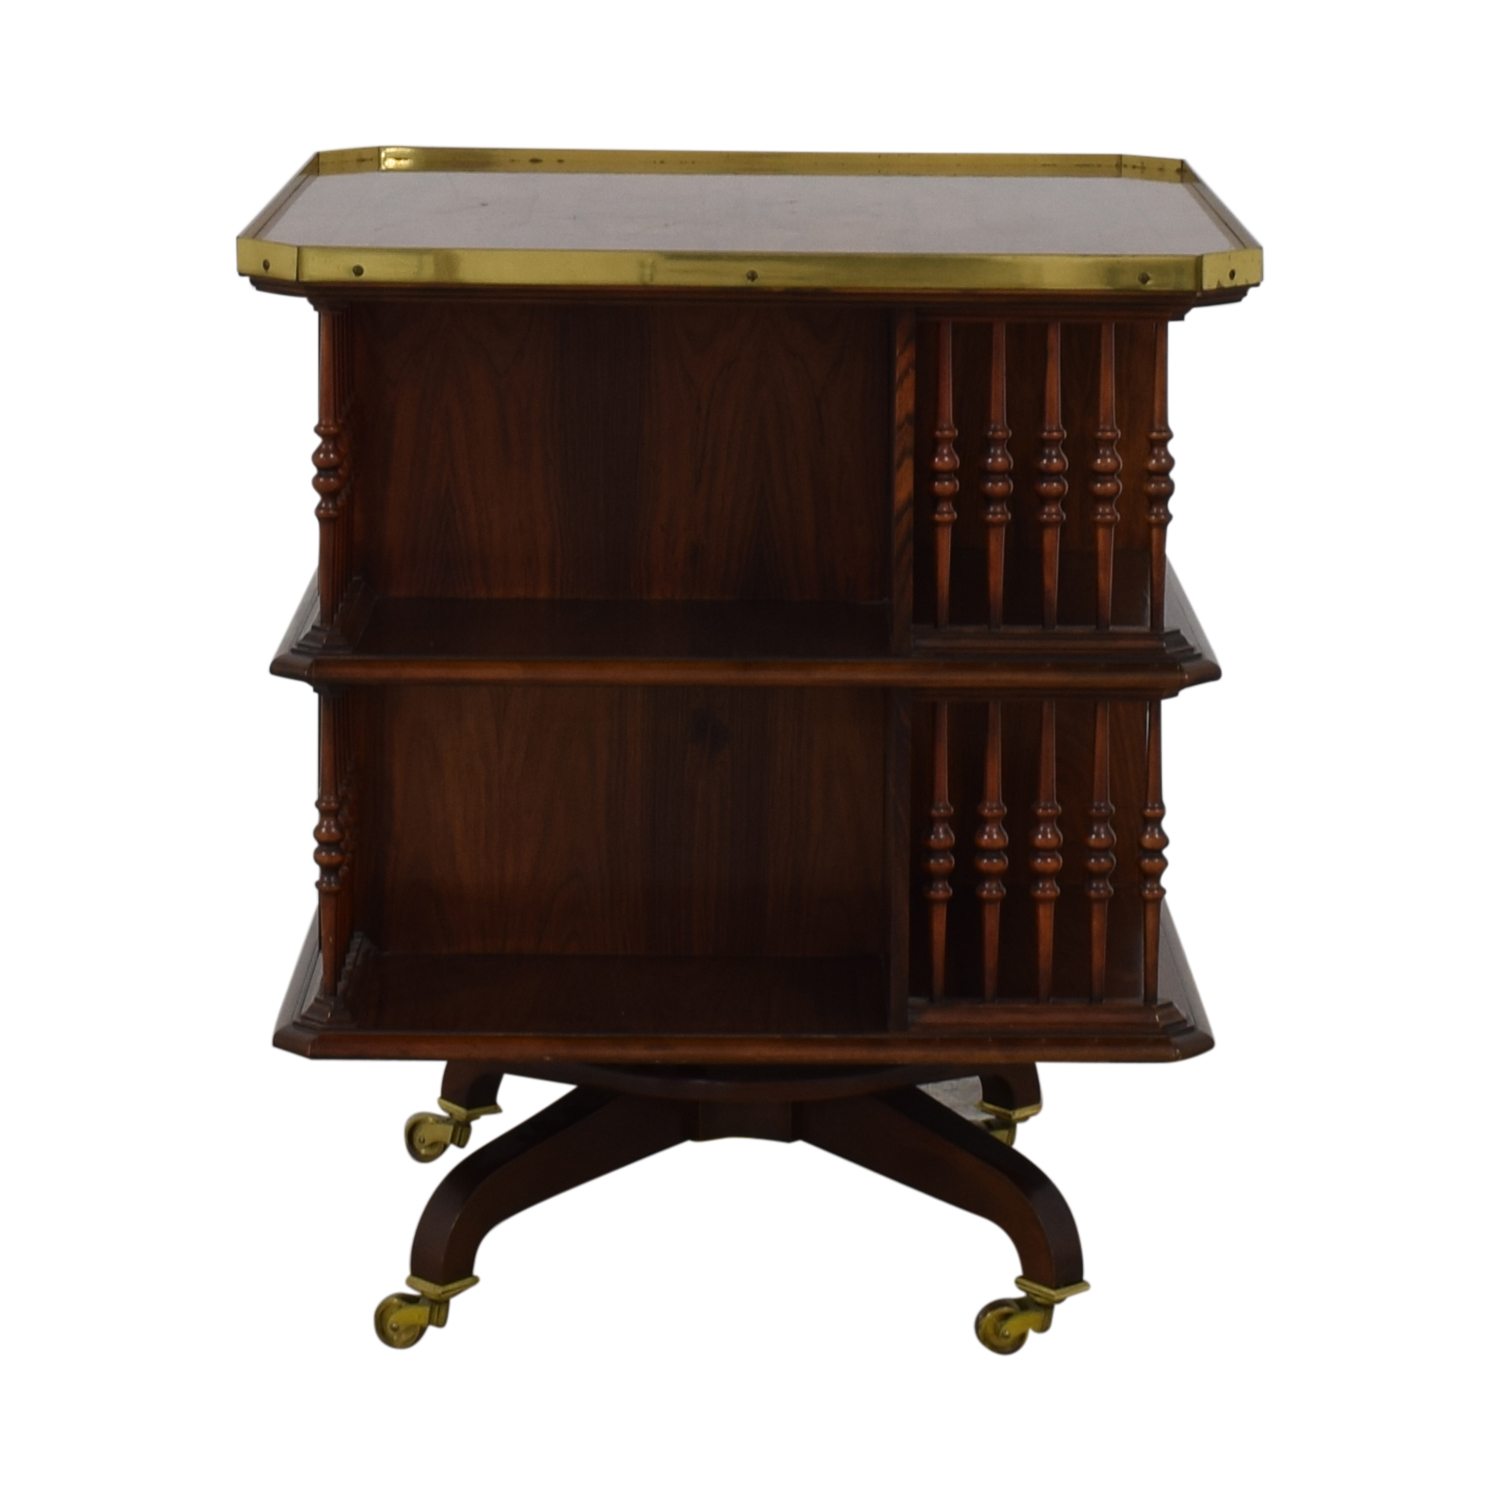 Baker Furniture Baker Furniture Swiveling Library Table second hand